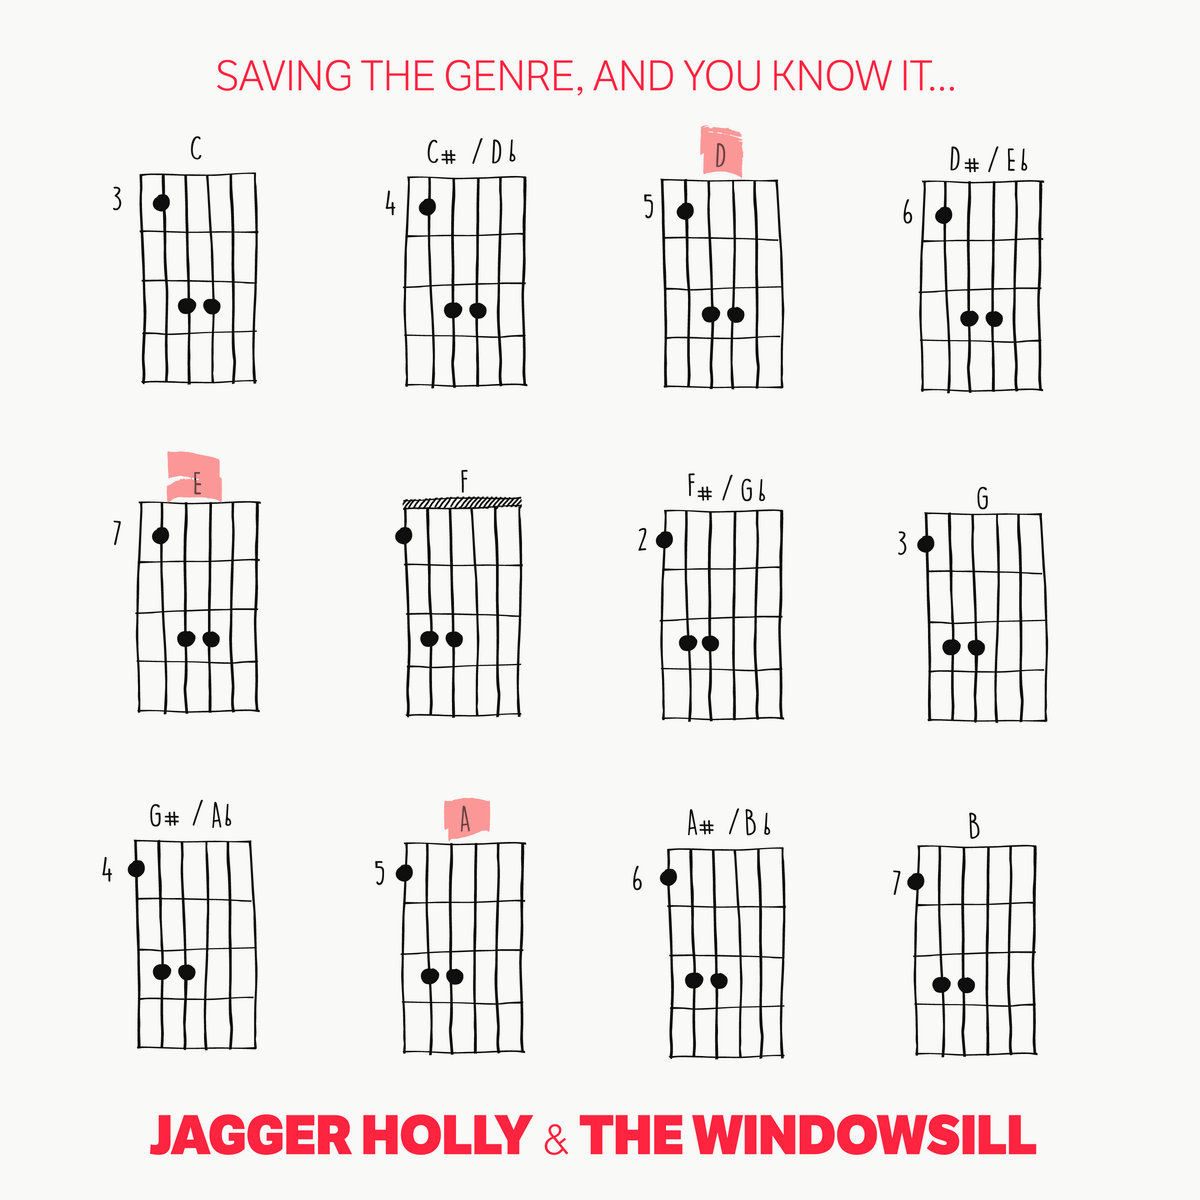 New at REAL GONE:  Jagger Holly / The Windowsill (split) - Saving The Genre, And You Know It... (review & stream)  Classic pop punk from two Euro bands!  Come and listen!  http://www.realgonerocks.com/2020/02/jagger-holly-the-windowsill-saving-the-genre-and-you-know-it-split/ …  #punk #poppunk pic.twitter.com/0CqZv5tSP9